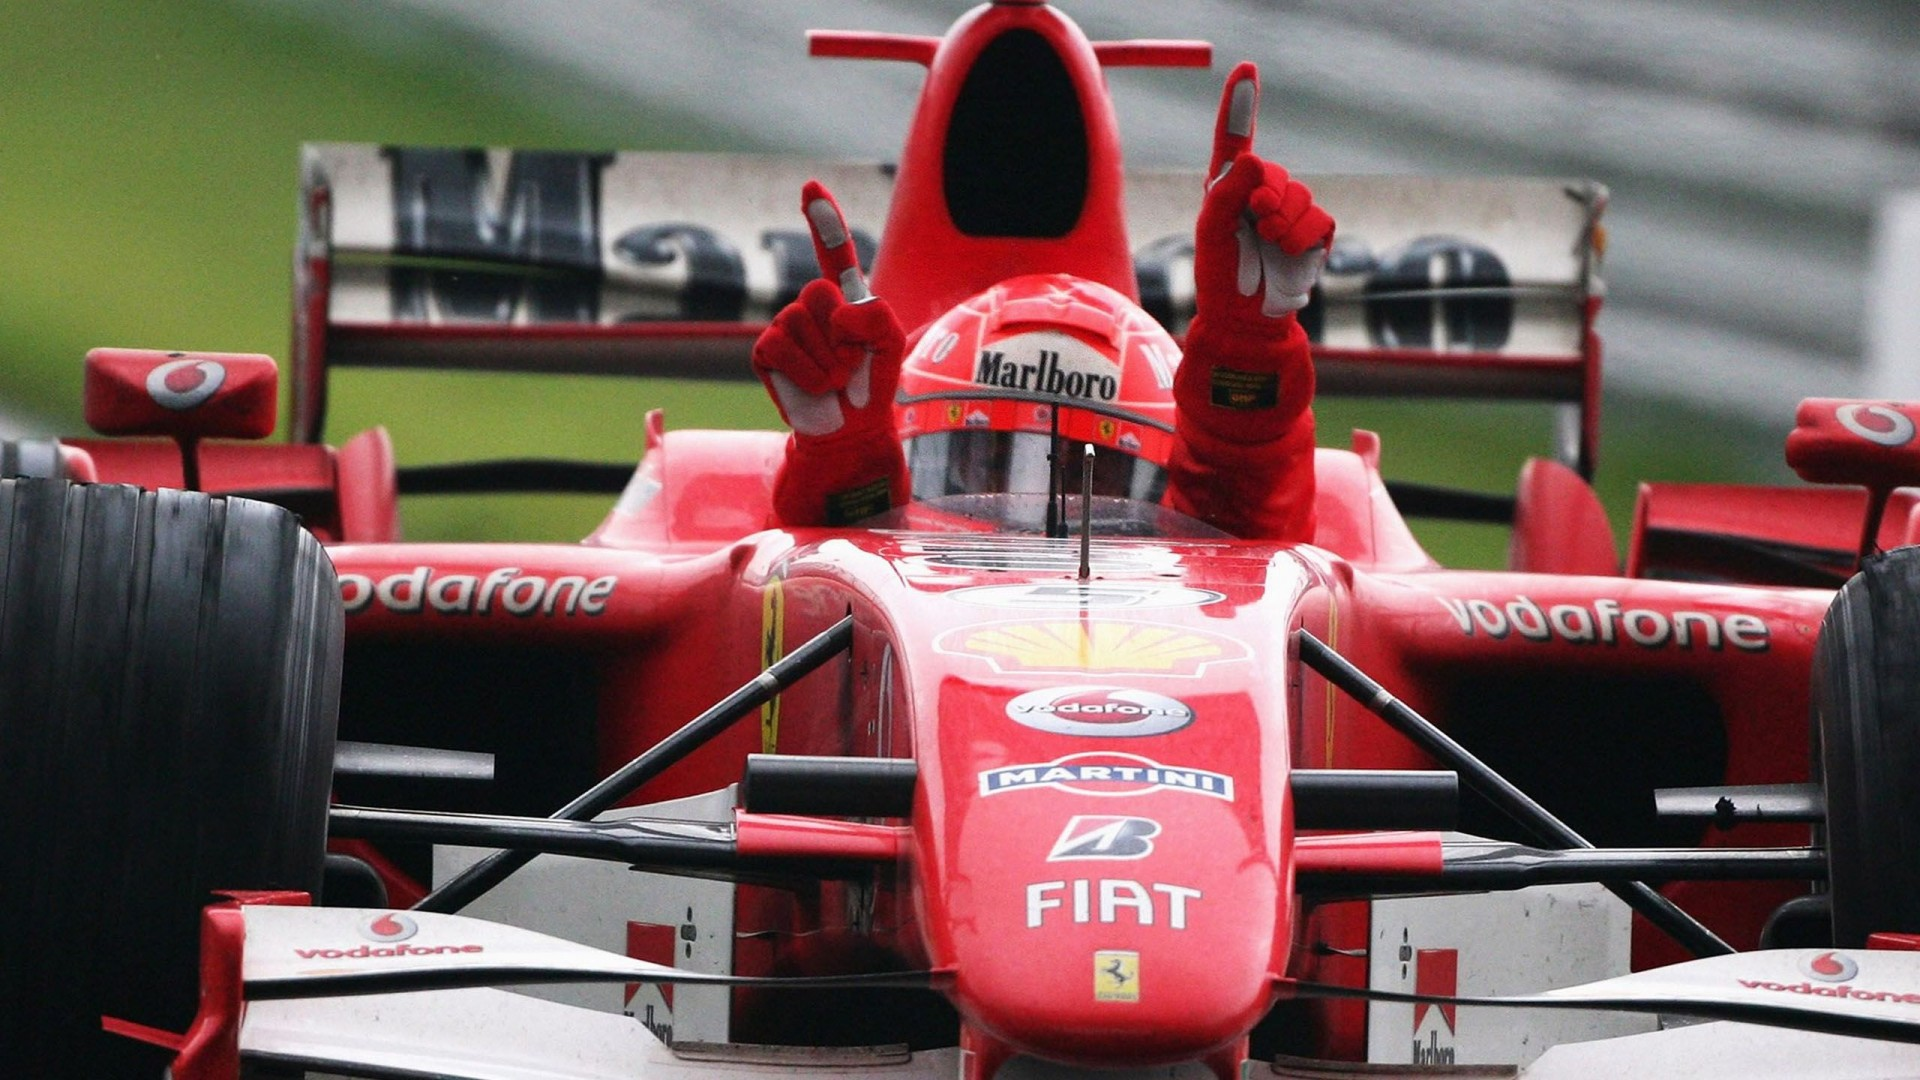 Michael Schumacher Wallpaper HD